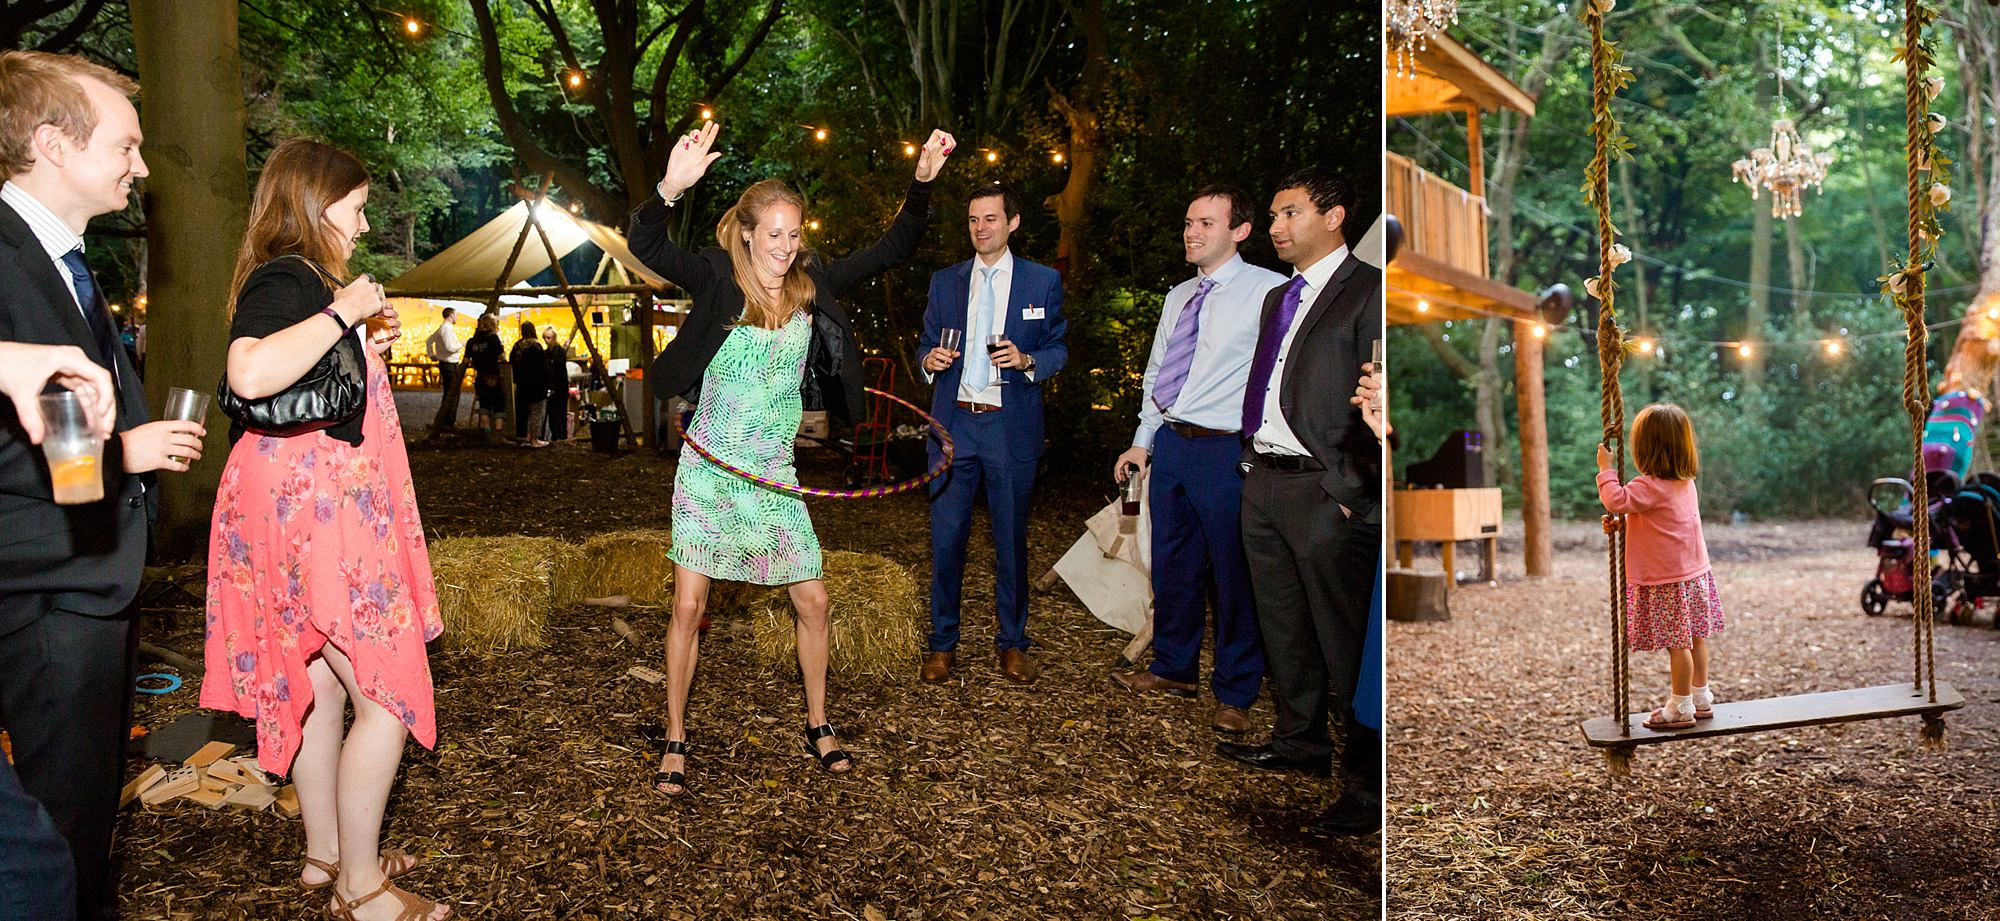 Woodland Weddings Tring guests hula hooping